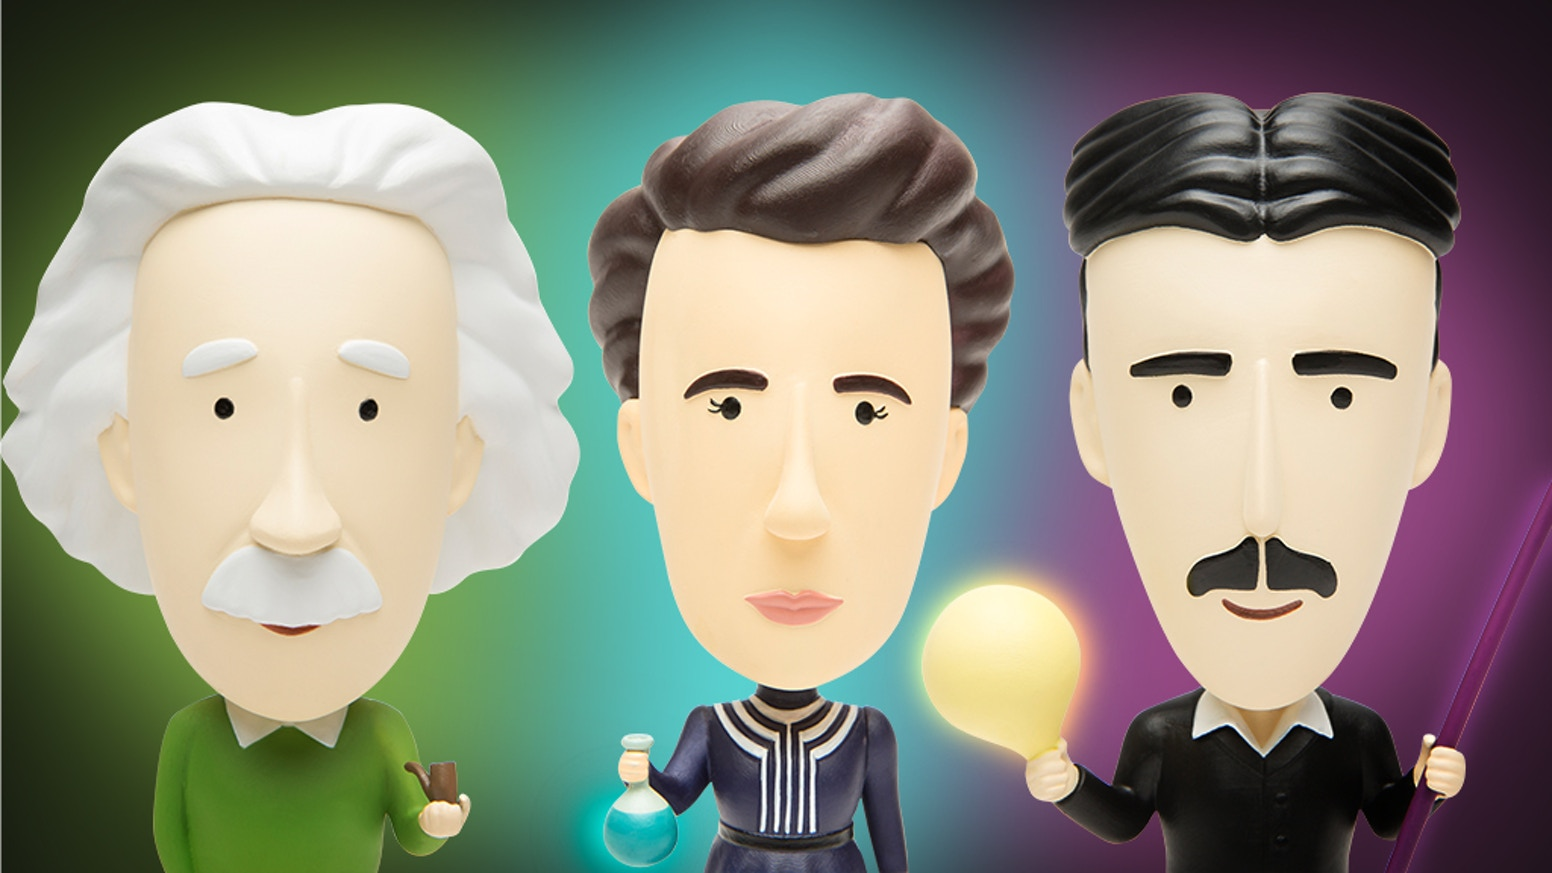 Introducing a new line of charming and inspiring historical figurines, including a free Augmented Reality app!